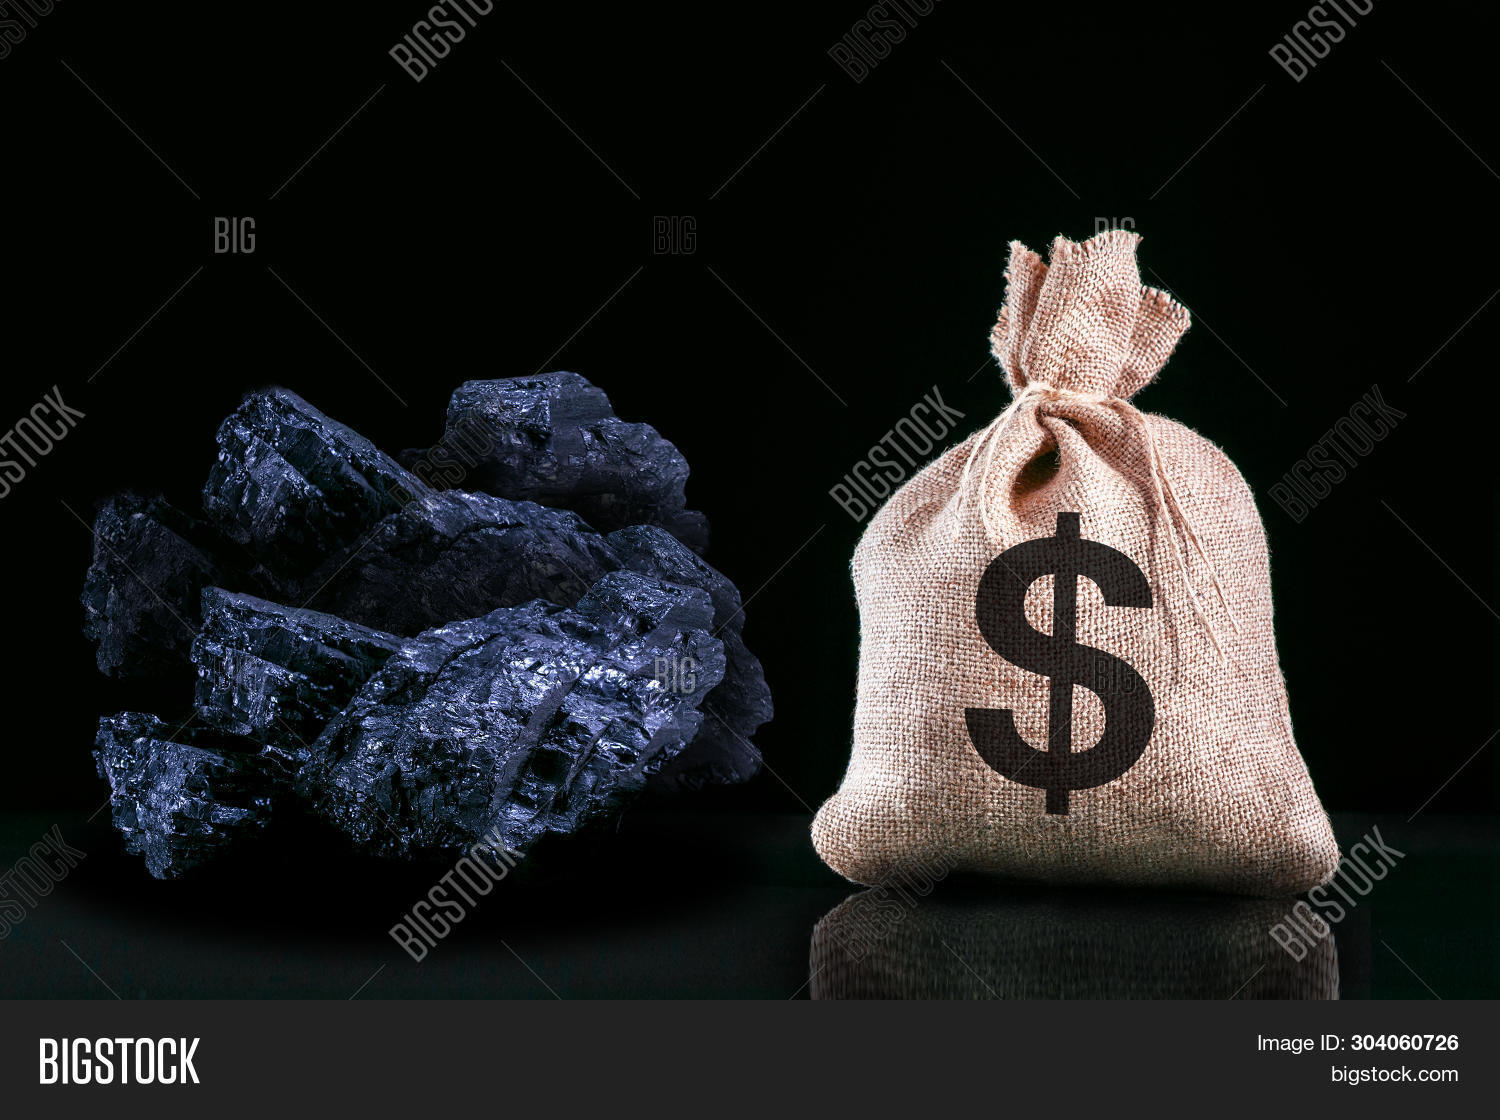 Dollar Banknotes And Coal Stones Close Up. Mining Industry Concept With Dollars And Coal. Coal. Fina